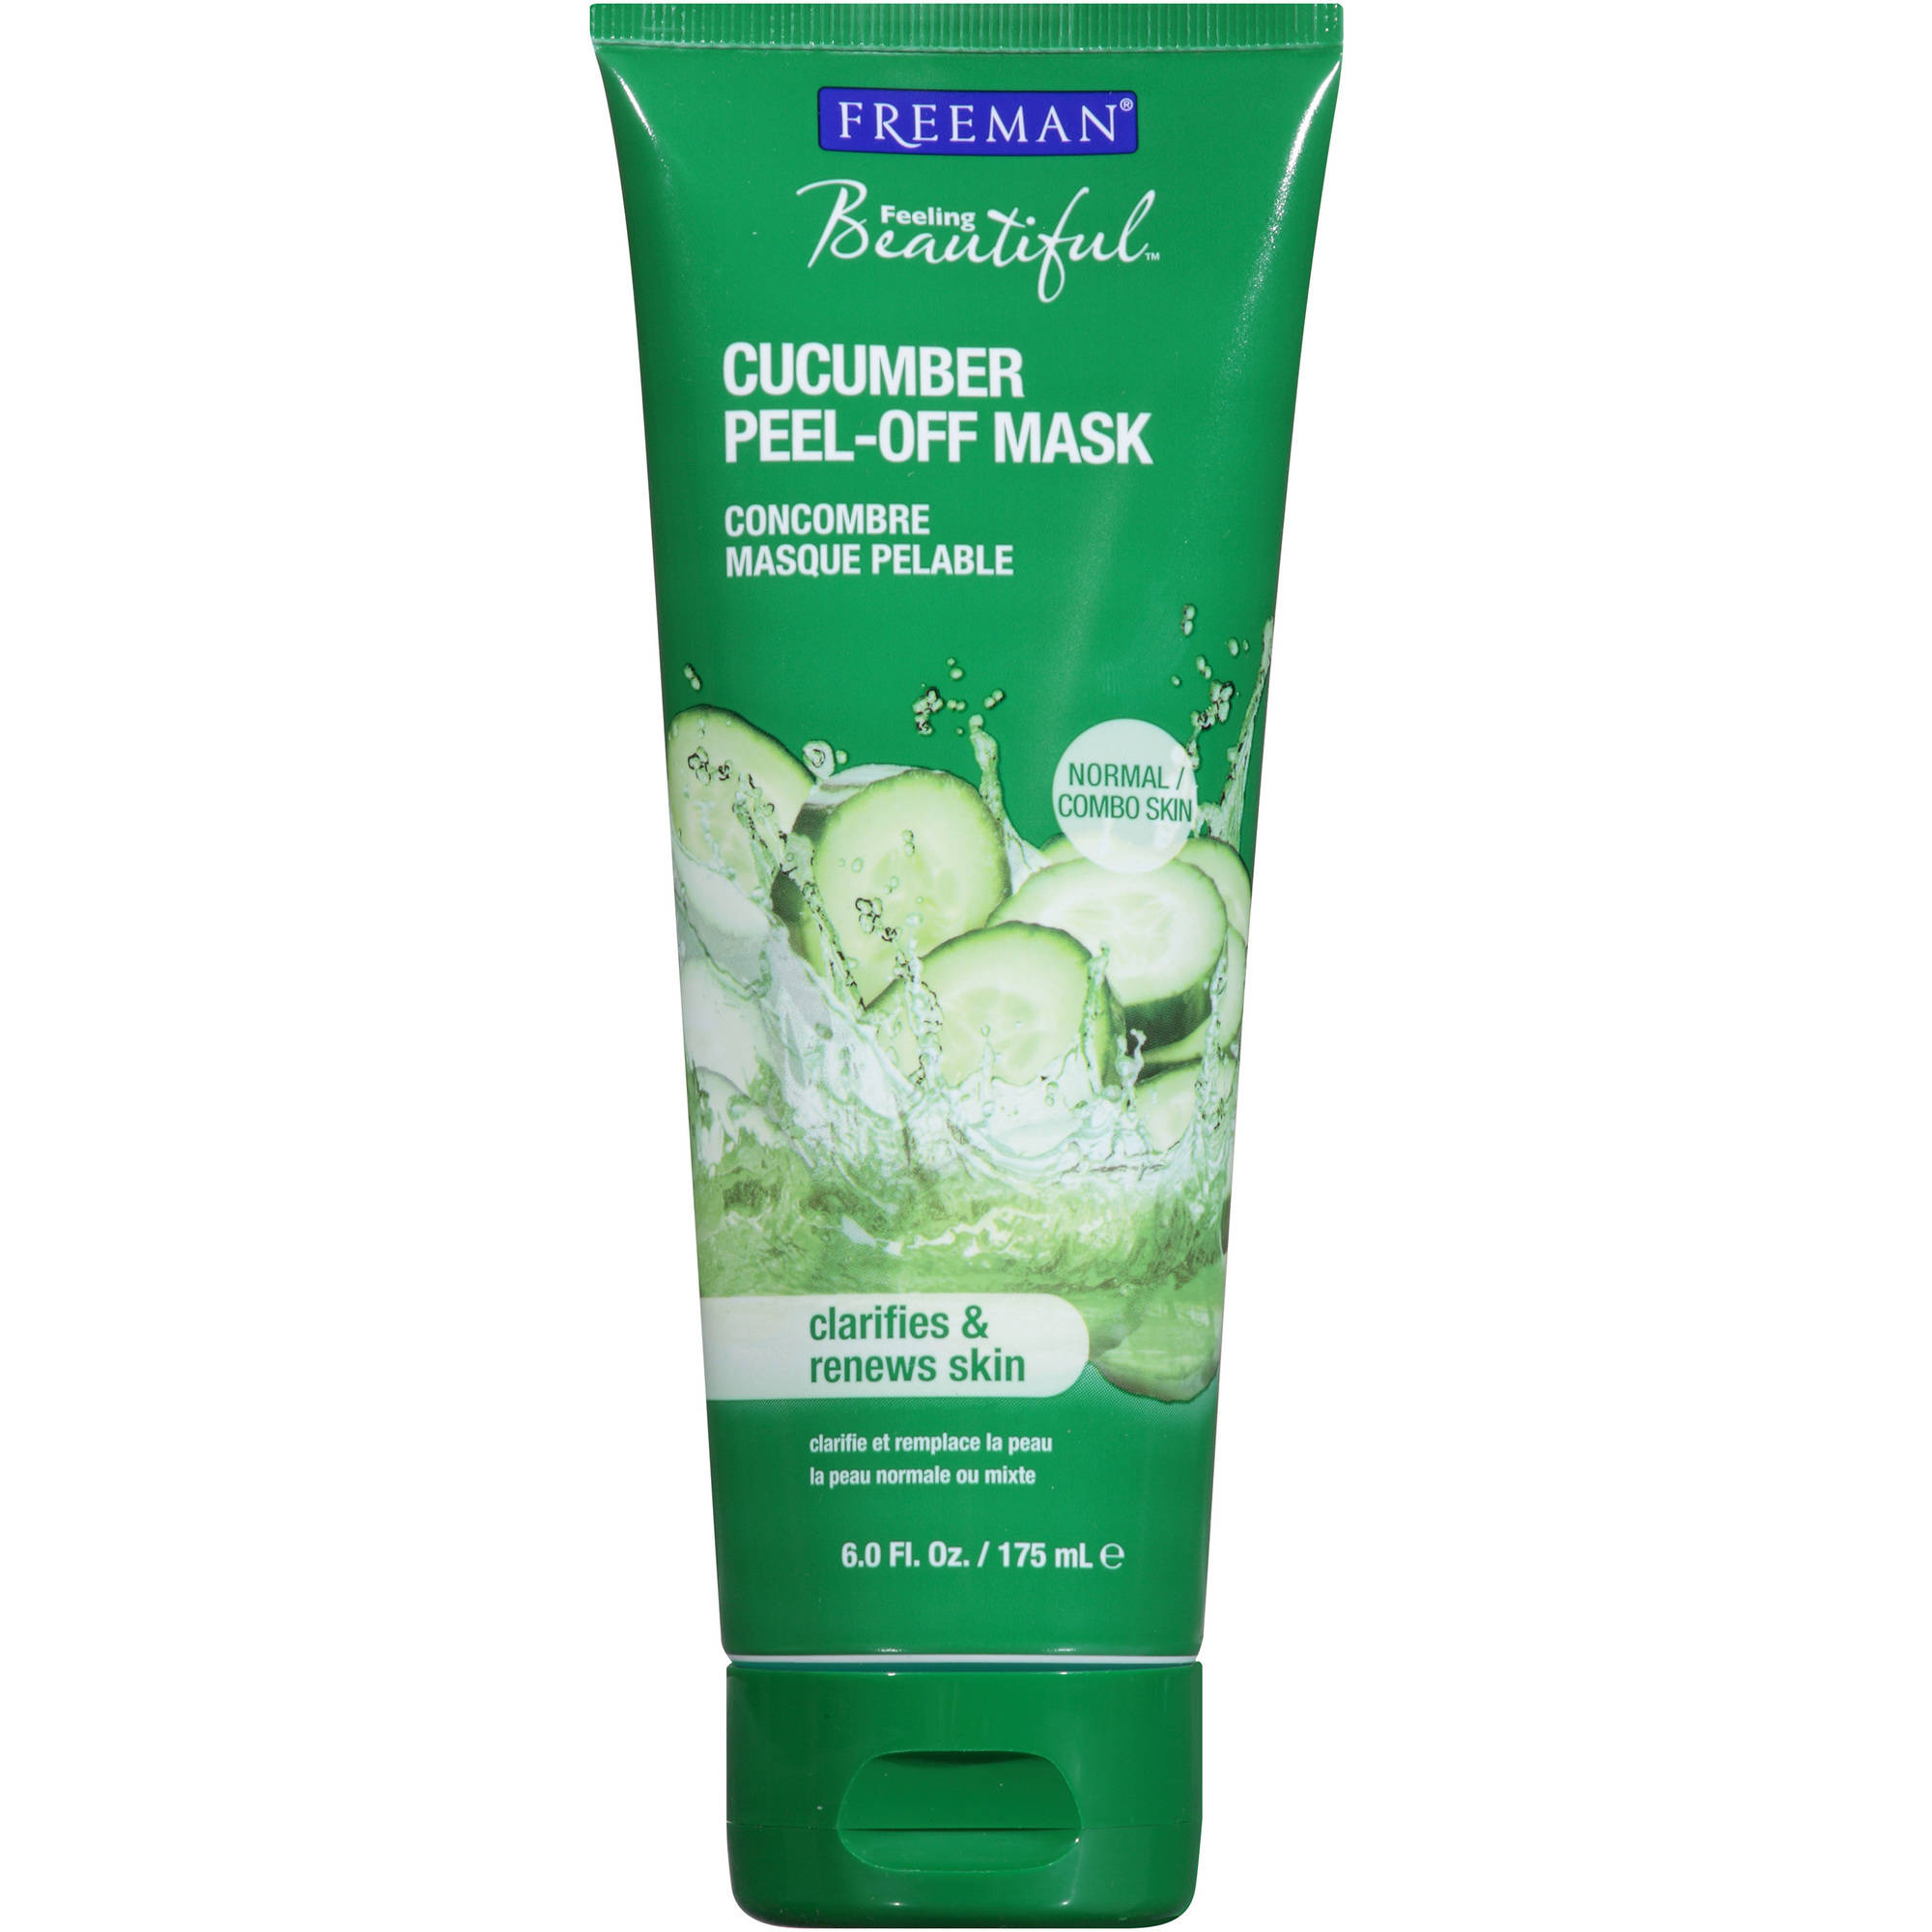 Feeling Beautiful Cucumber Facial Peel-Off Mask, 6 fl oz